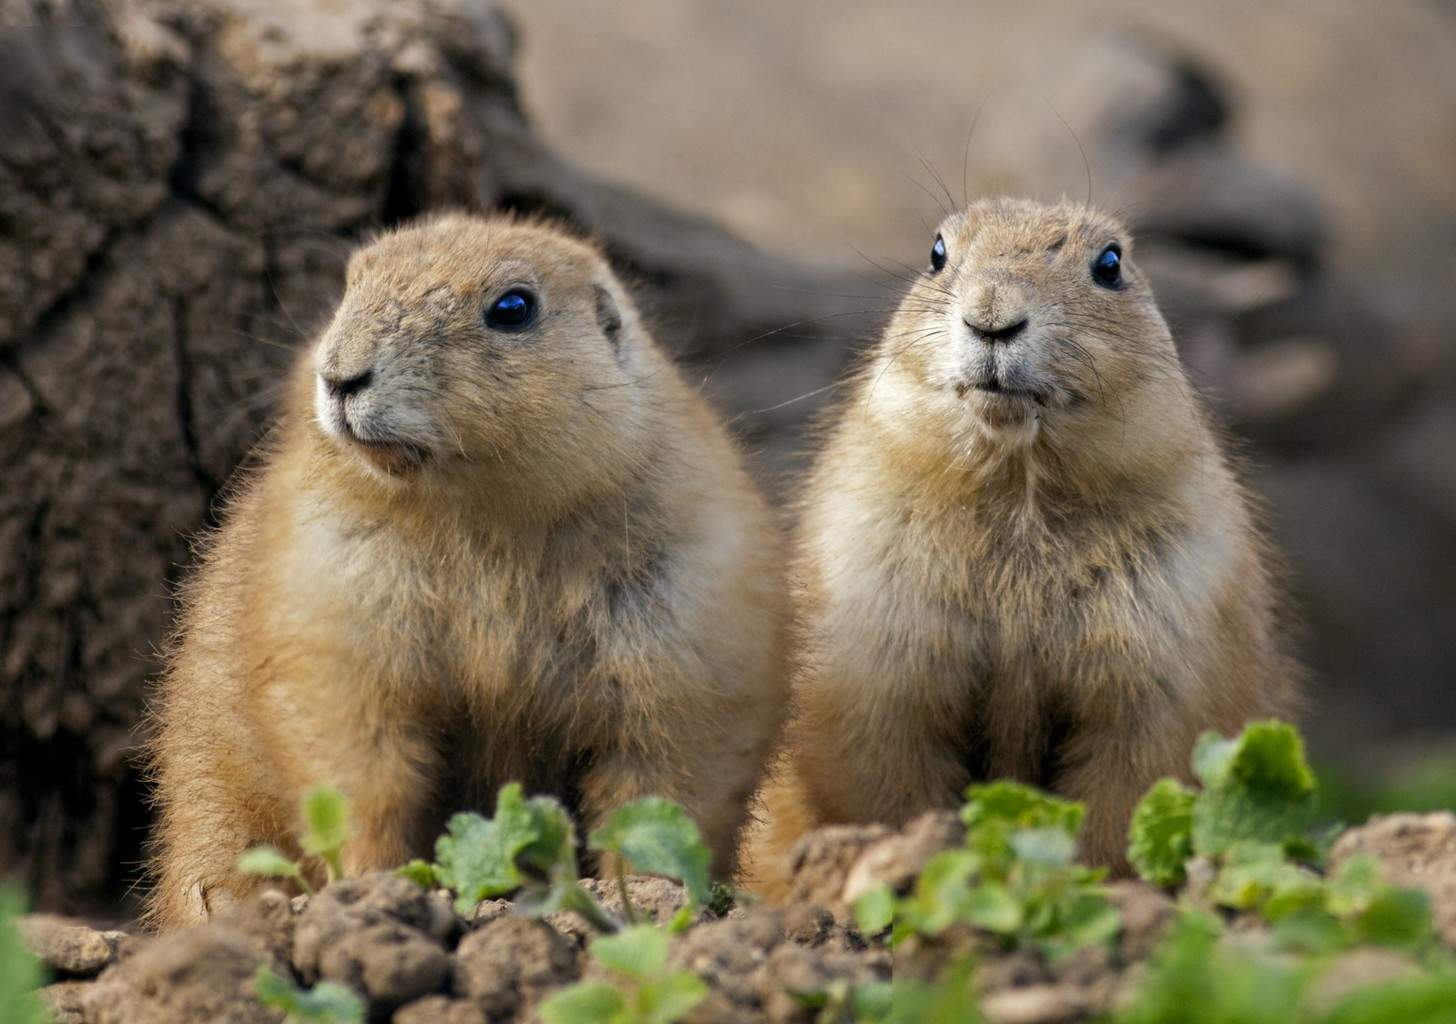 the prairie dog Buy tickets online prairie dog central railway ticket office ticket reservation system book your tickets instantly.